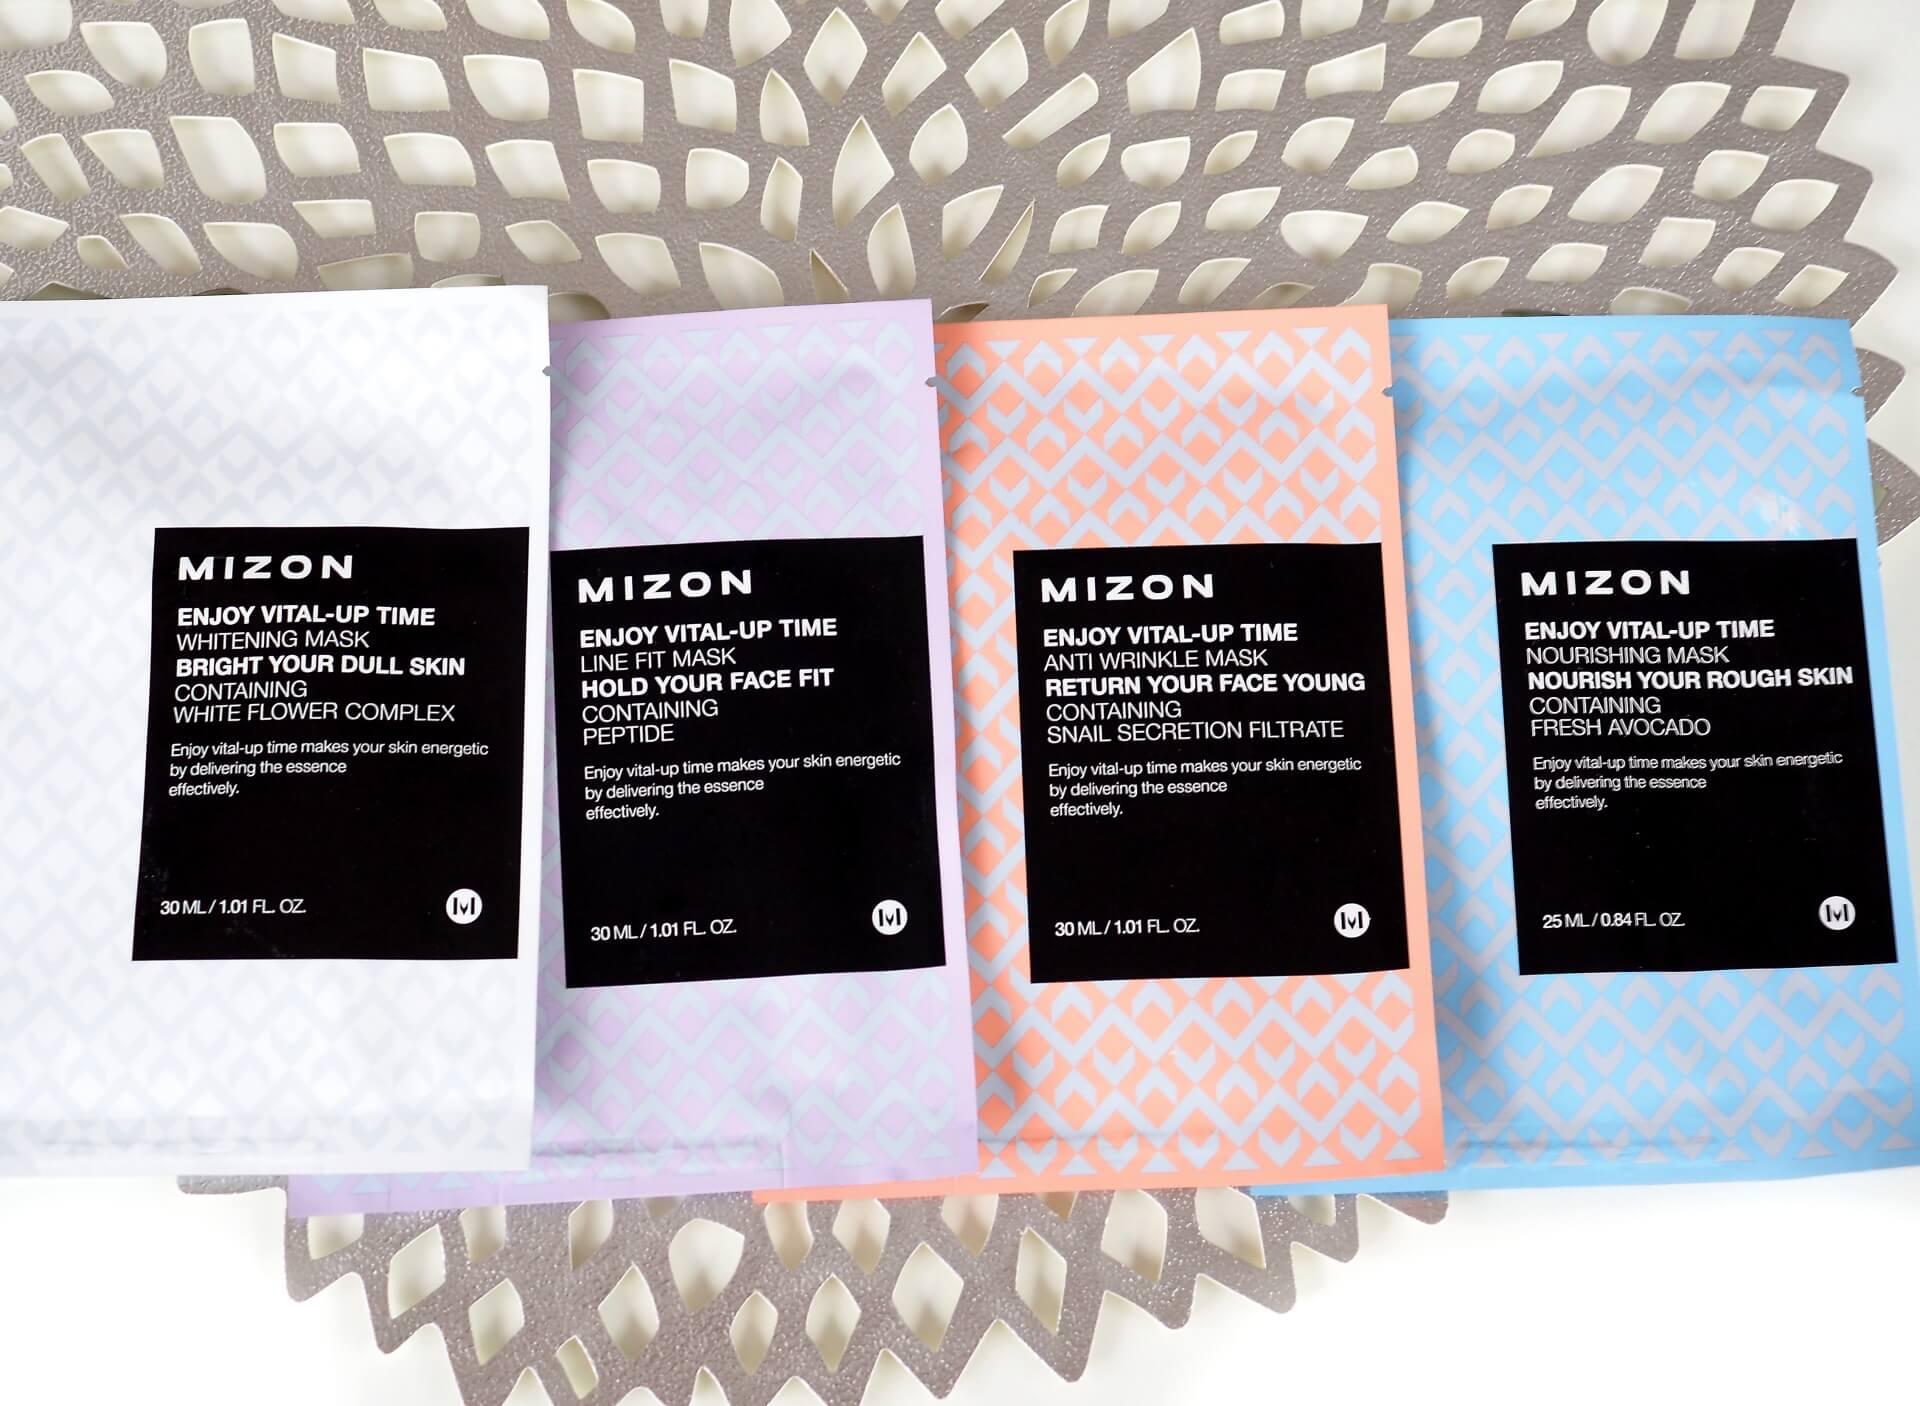 Mizon Enjoy Vital-Up Time